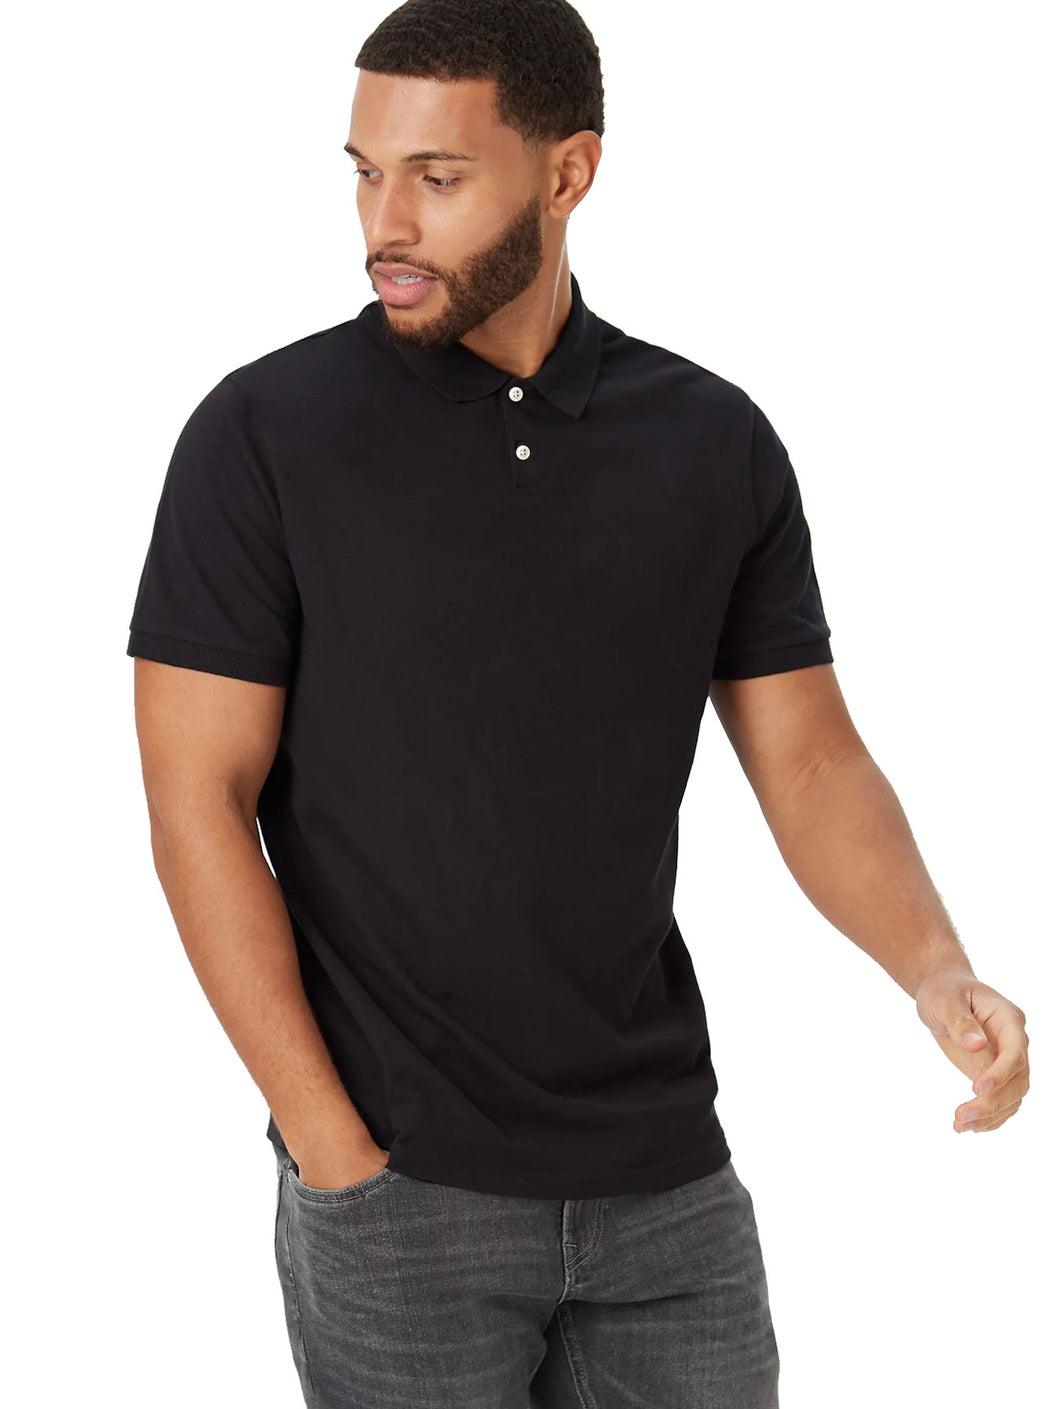 MEN'S S/S POLO - Black/3640 - Export Mall Online Store Sale